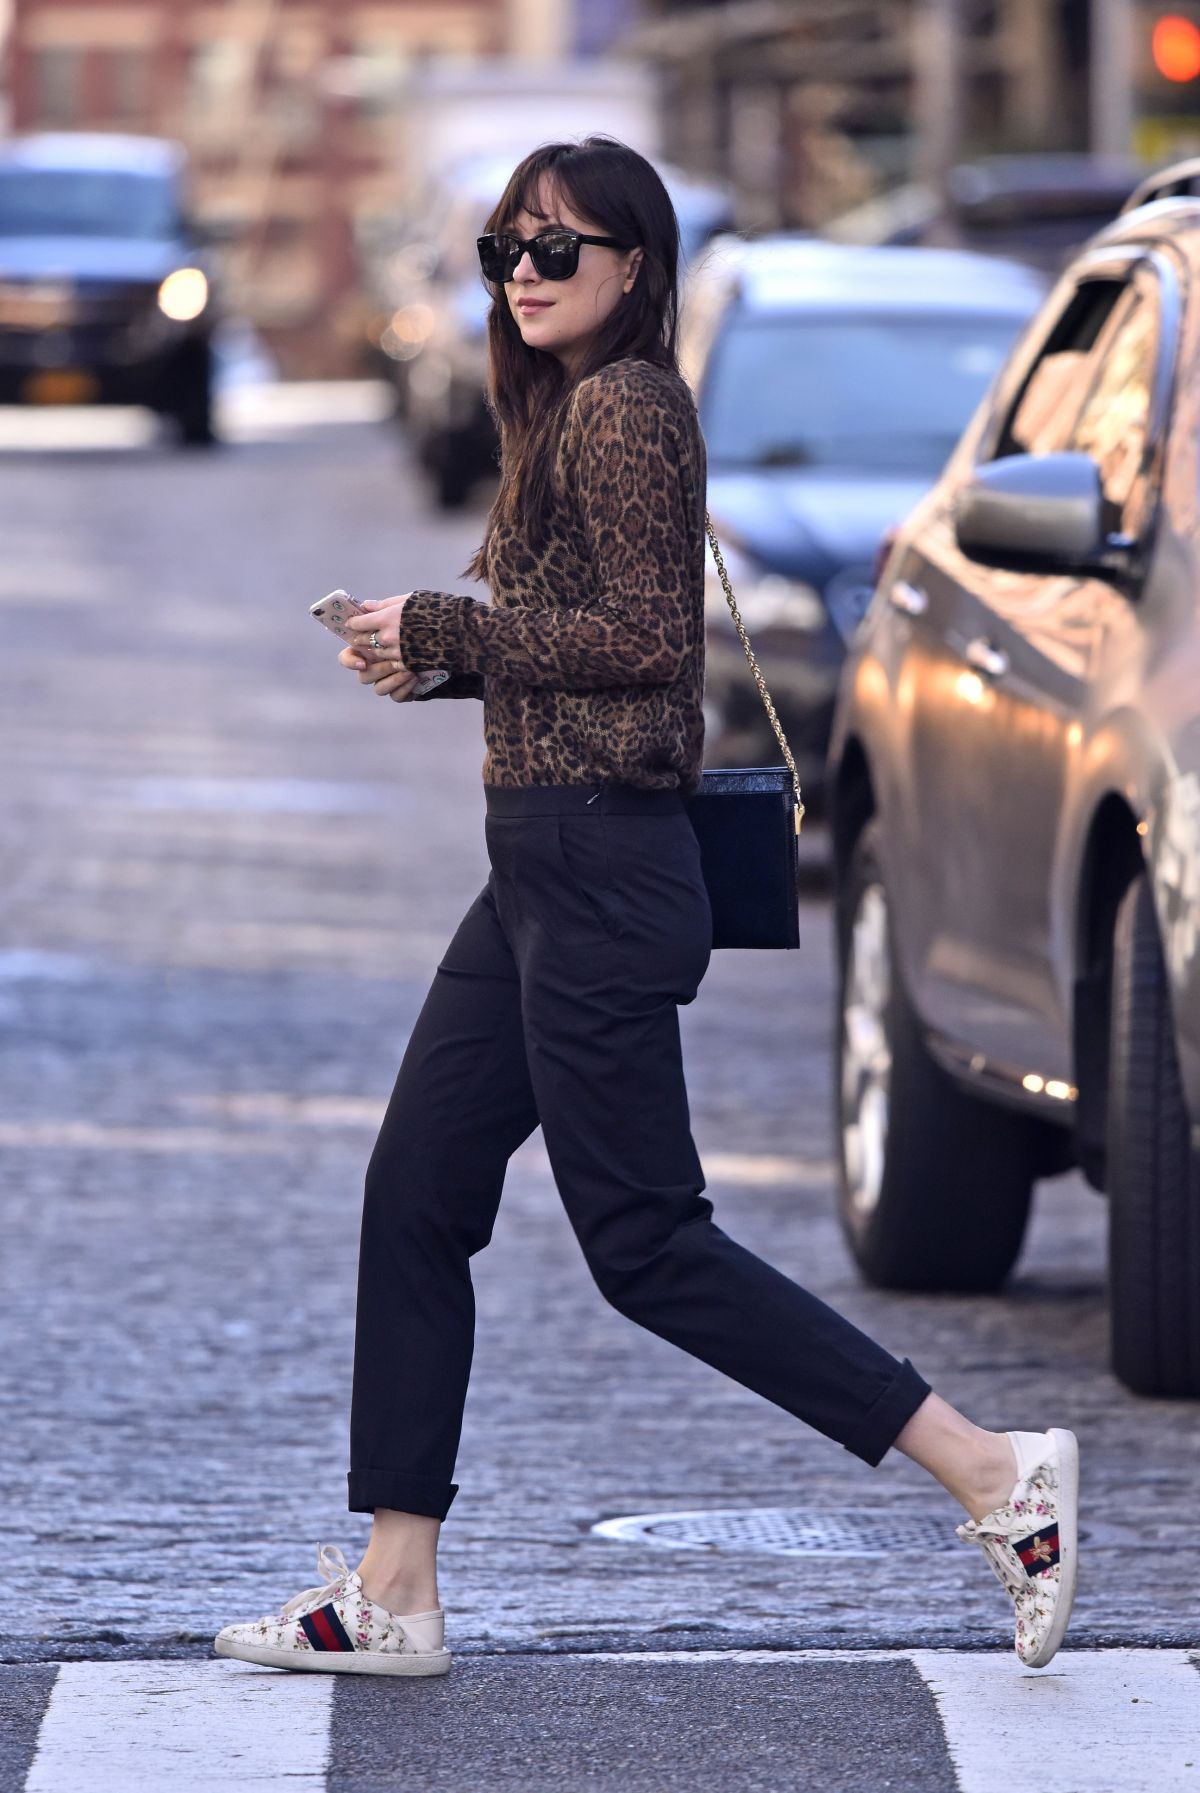 Dakota johnson in leopard top and gucci white sneakers and bag new york nudes (23 photos), Topless Celebrity pics